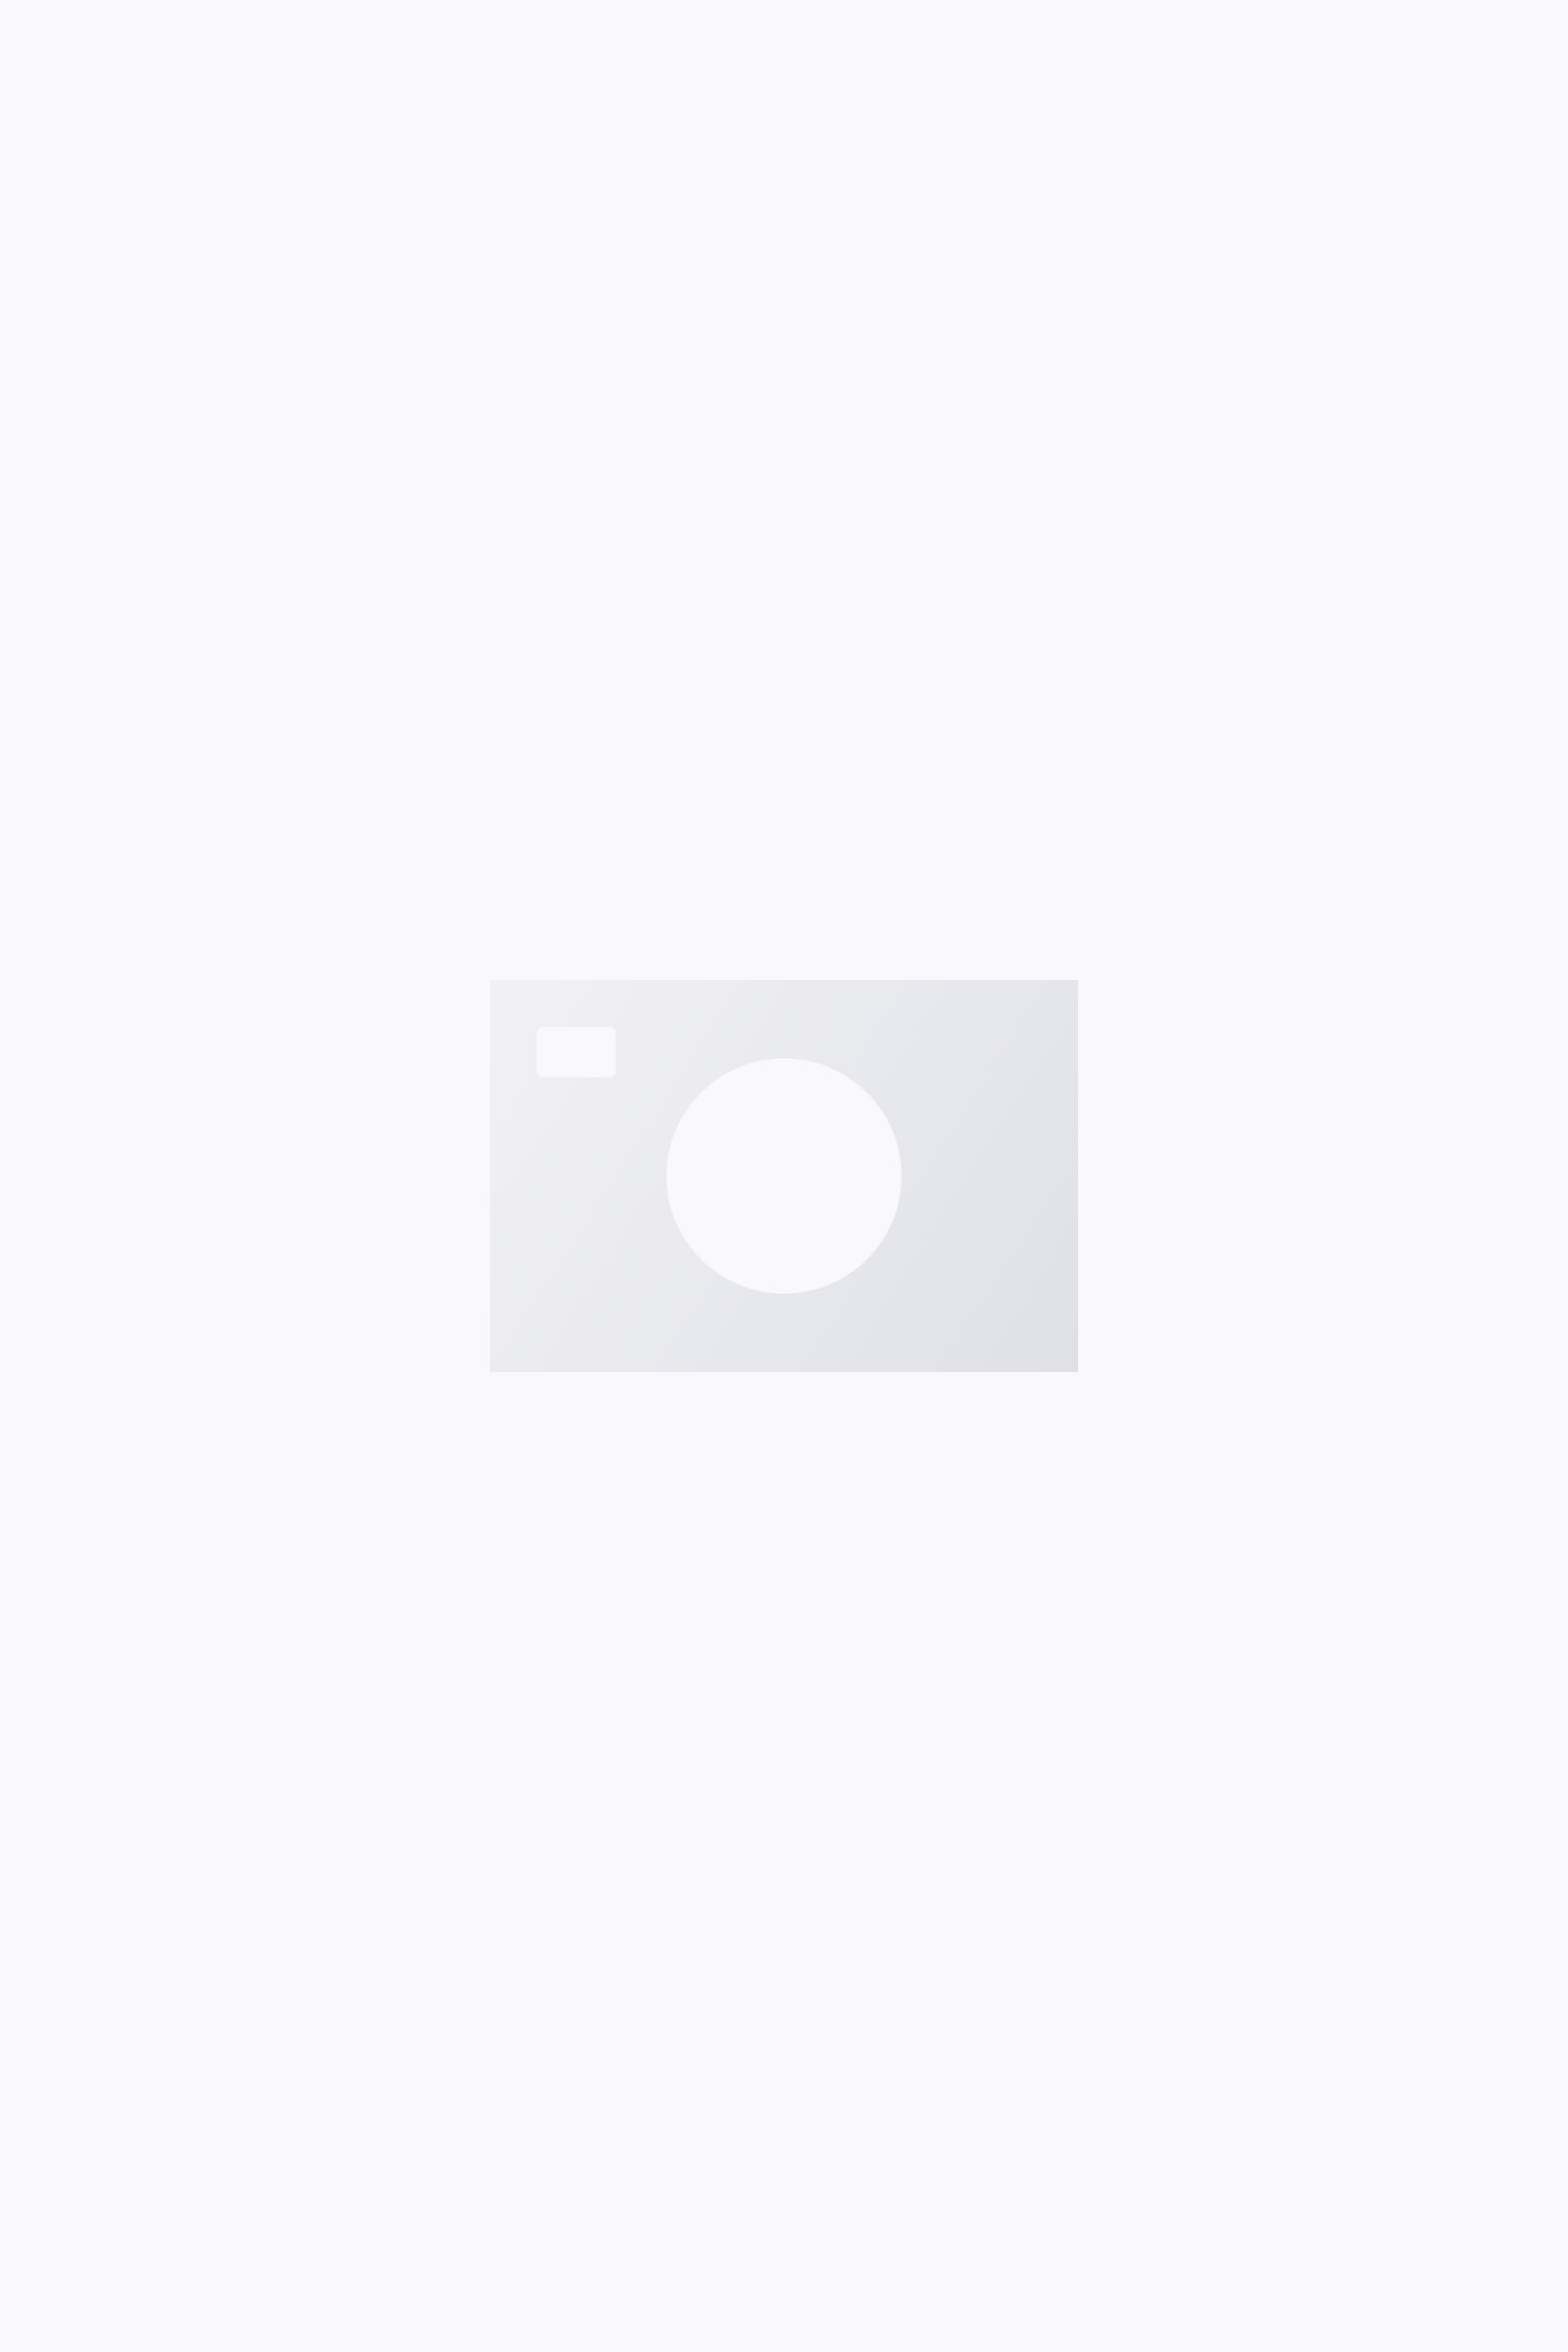 COS DENIM CULOTTES,off-white